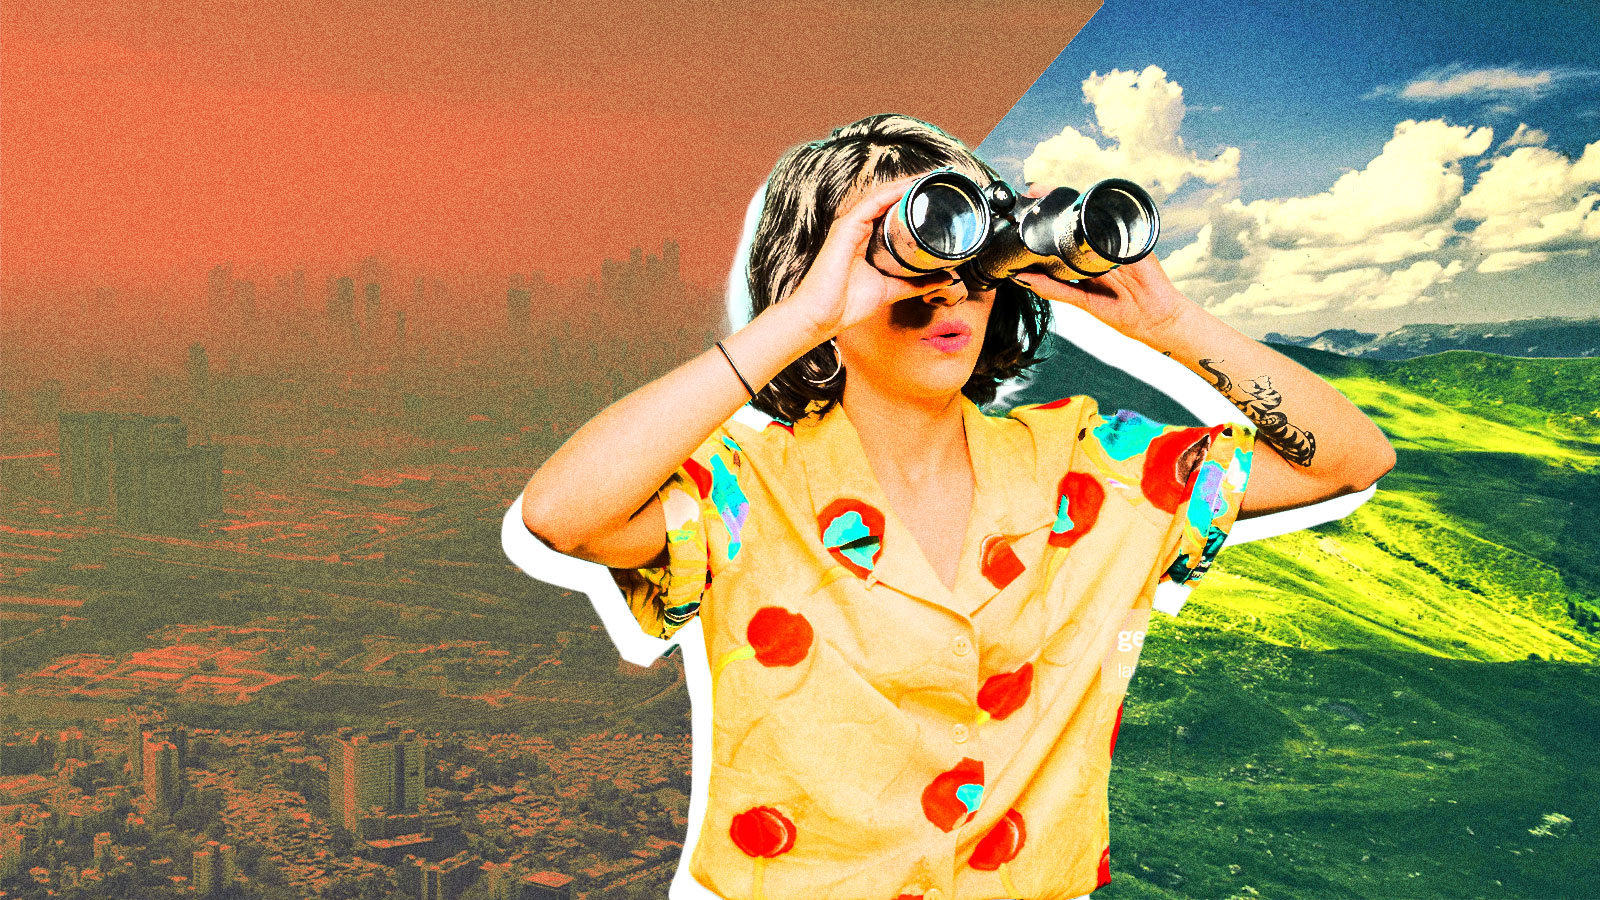 A woman looking through binoculars with a split screen of a smoggy city and green valley behind her